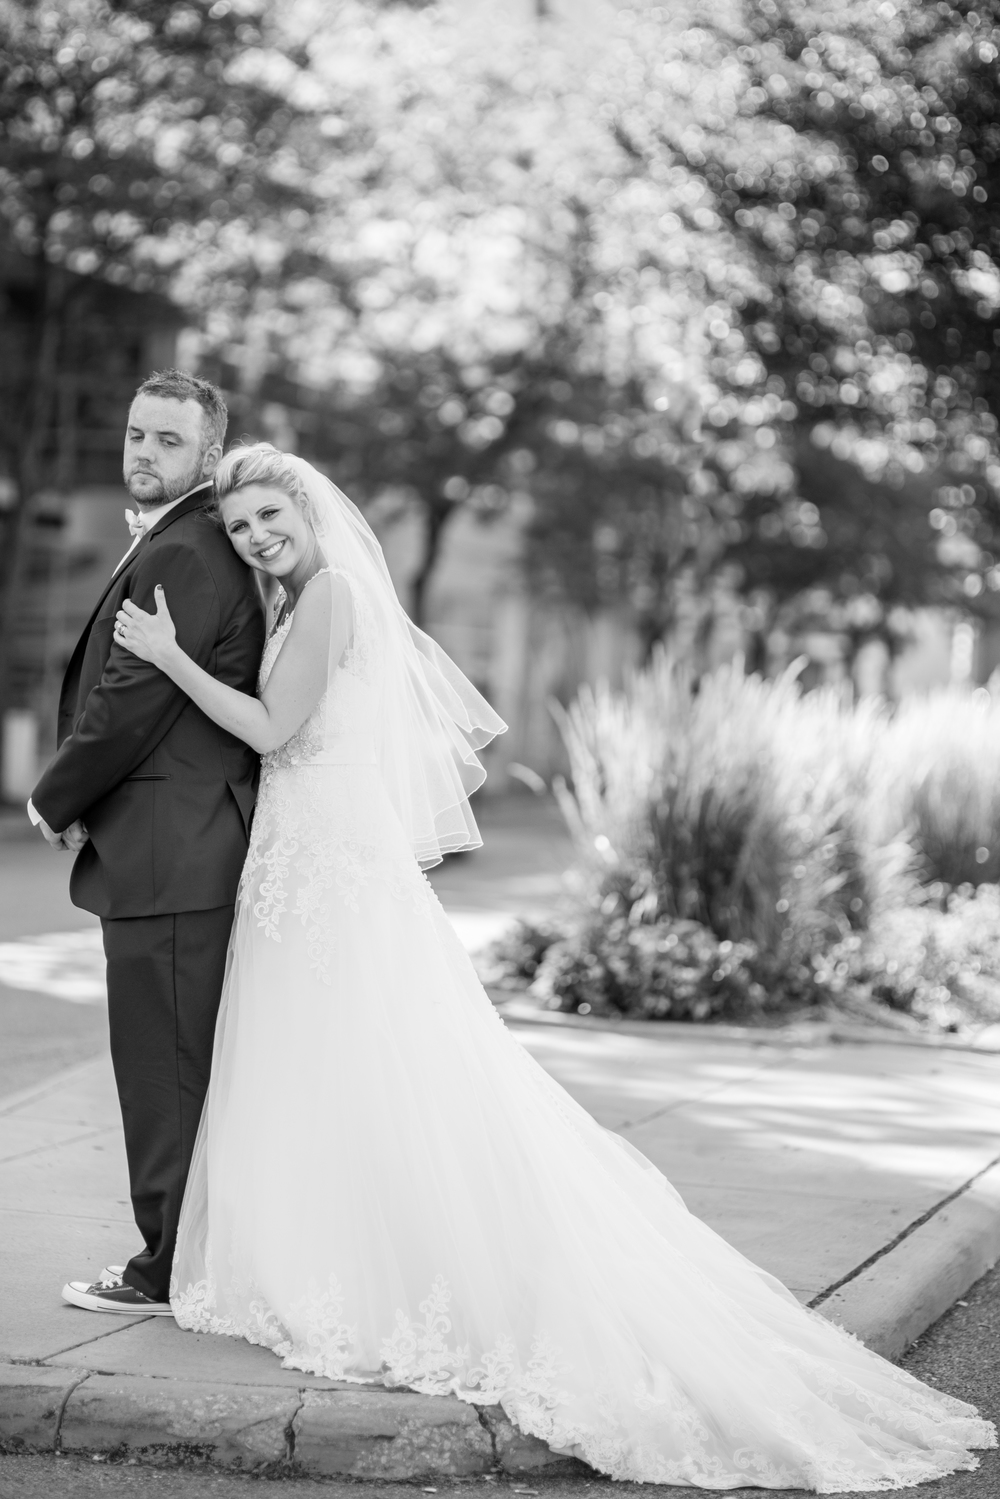 whitney_zunic_ohio_wedding_engagement_photography_104.jpg